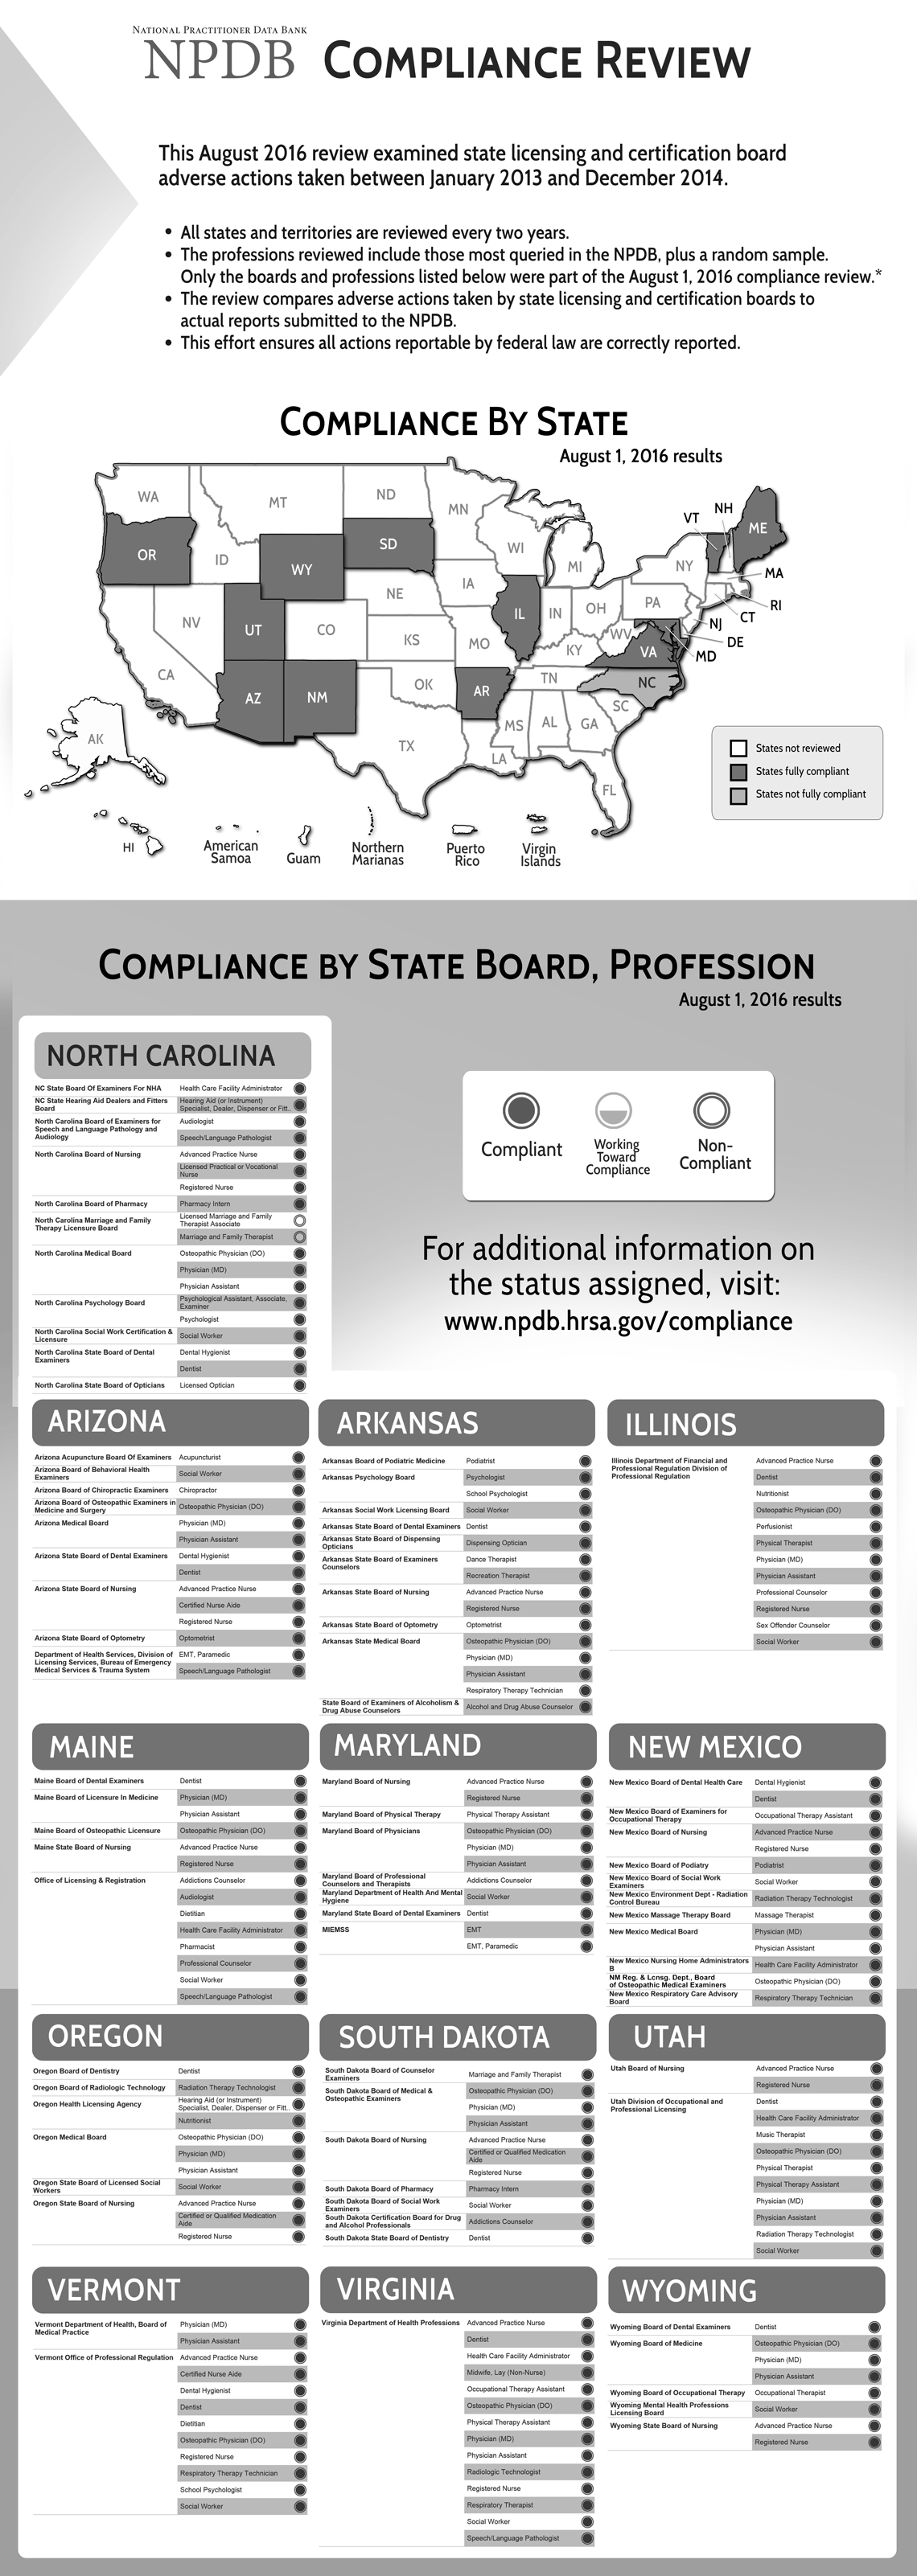 This image is a greyscale version of the Compliance Review August 2016 infographic.